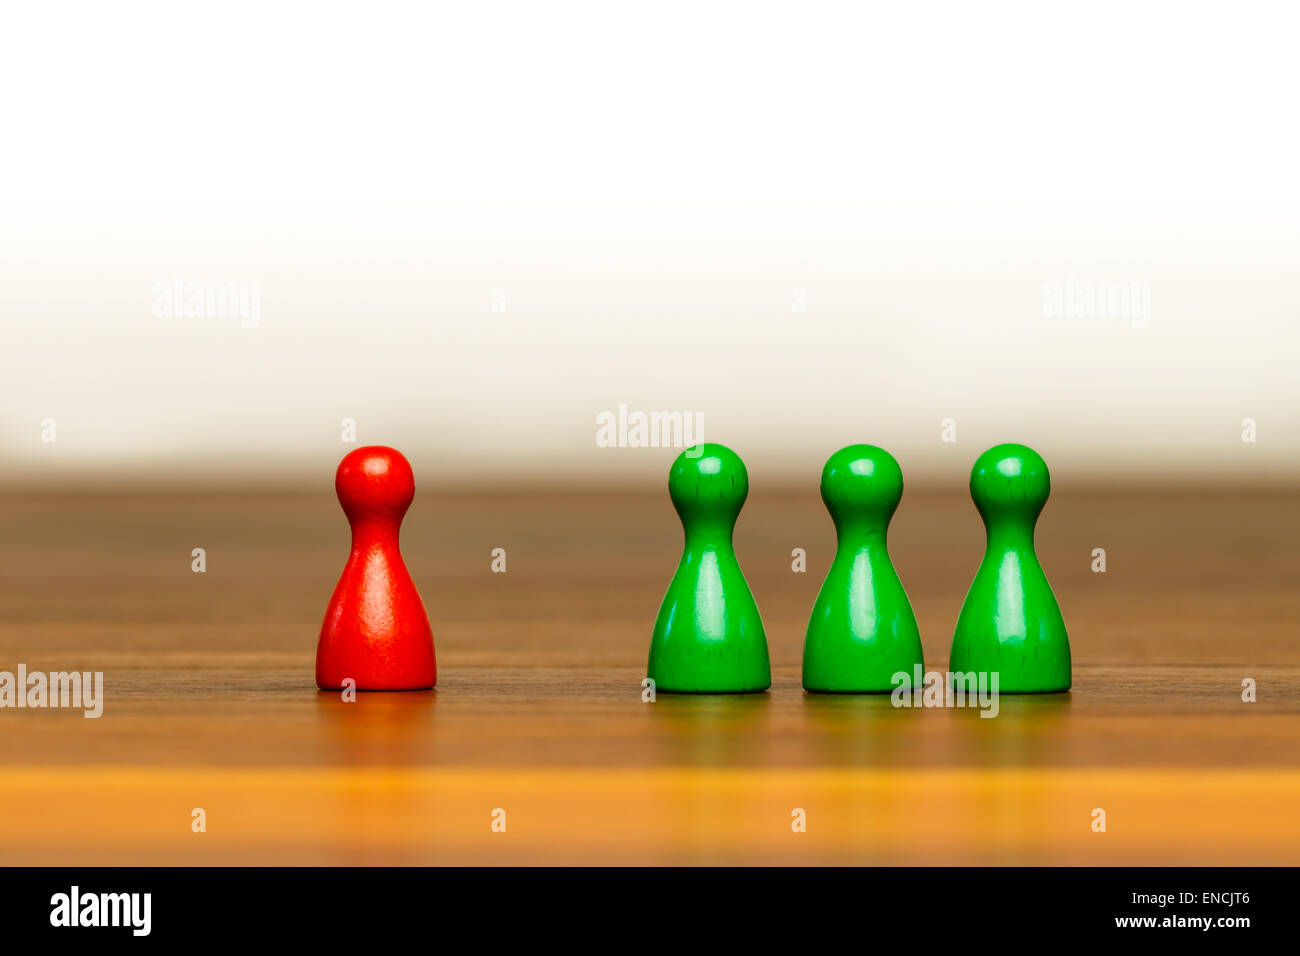 Concept for: good or bad, isolation, confrontation, competition and difference. With colorful red and green pawn - Stock Image